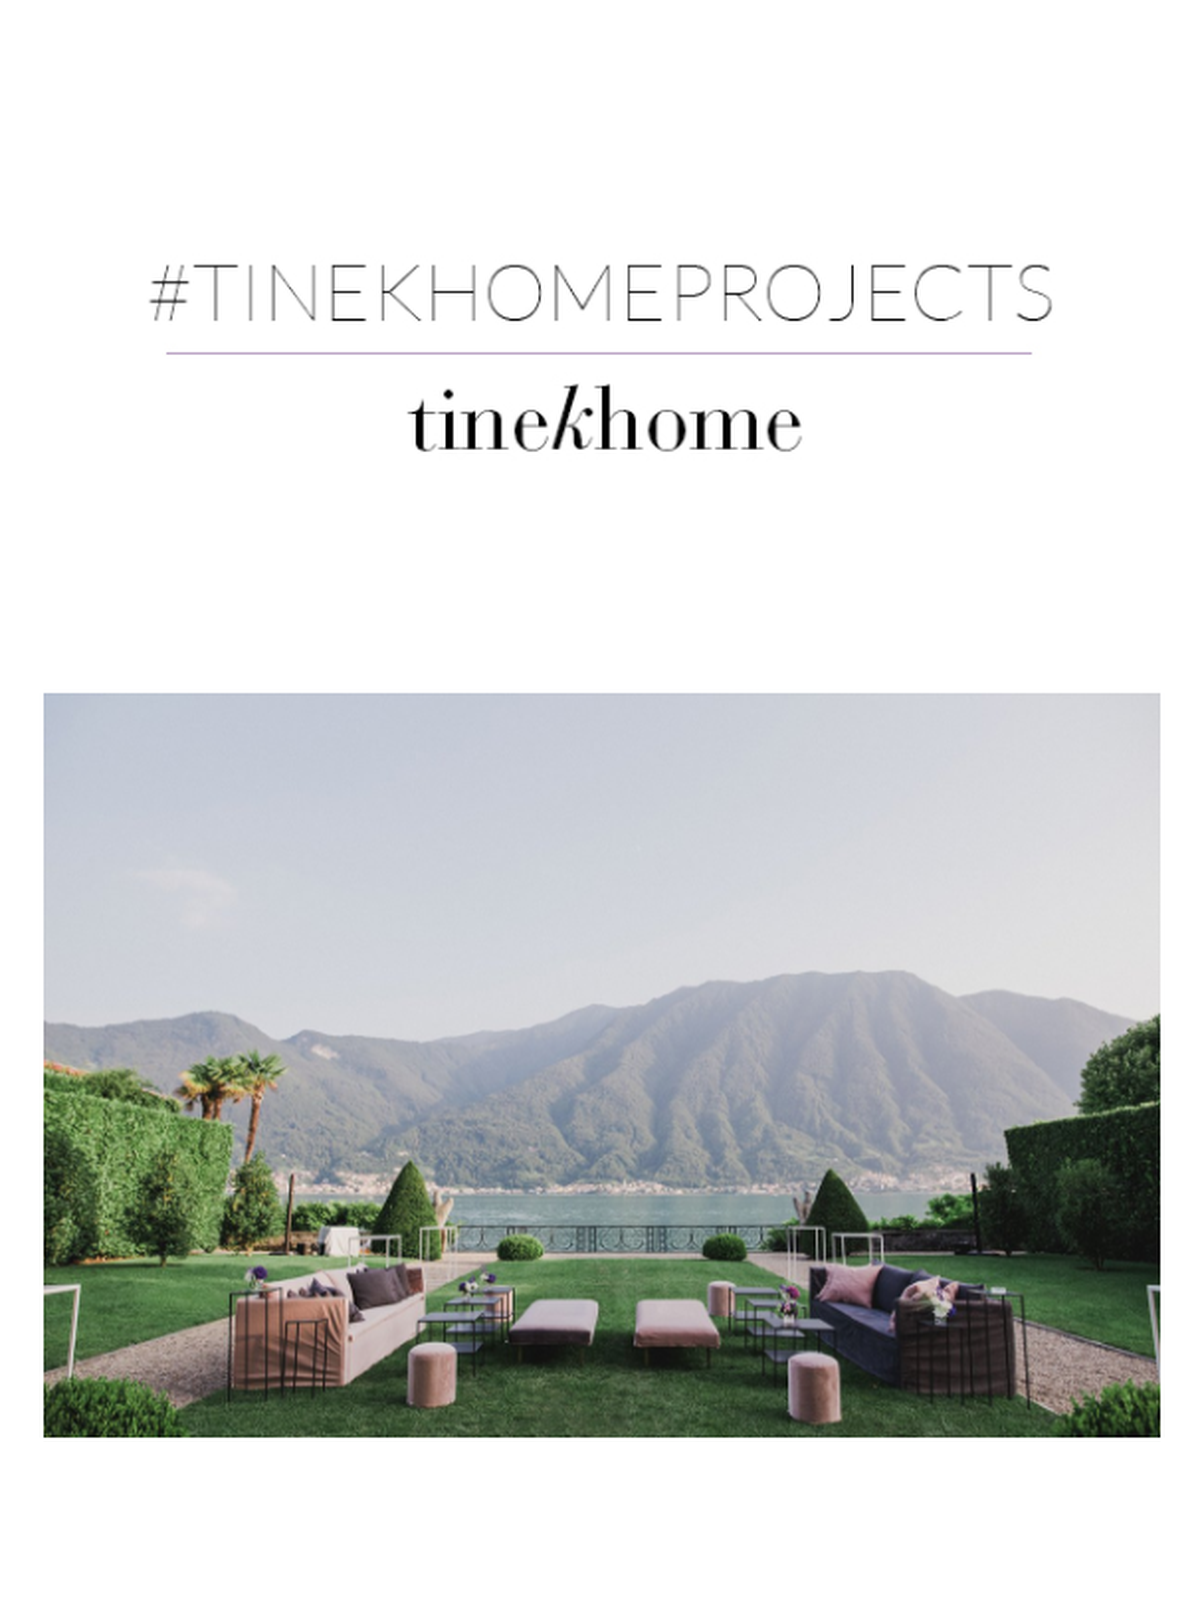 tinekhome projects - hotels, showrooms and restaurant in Europe